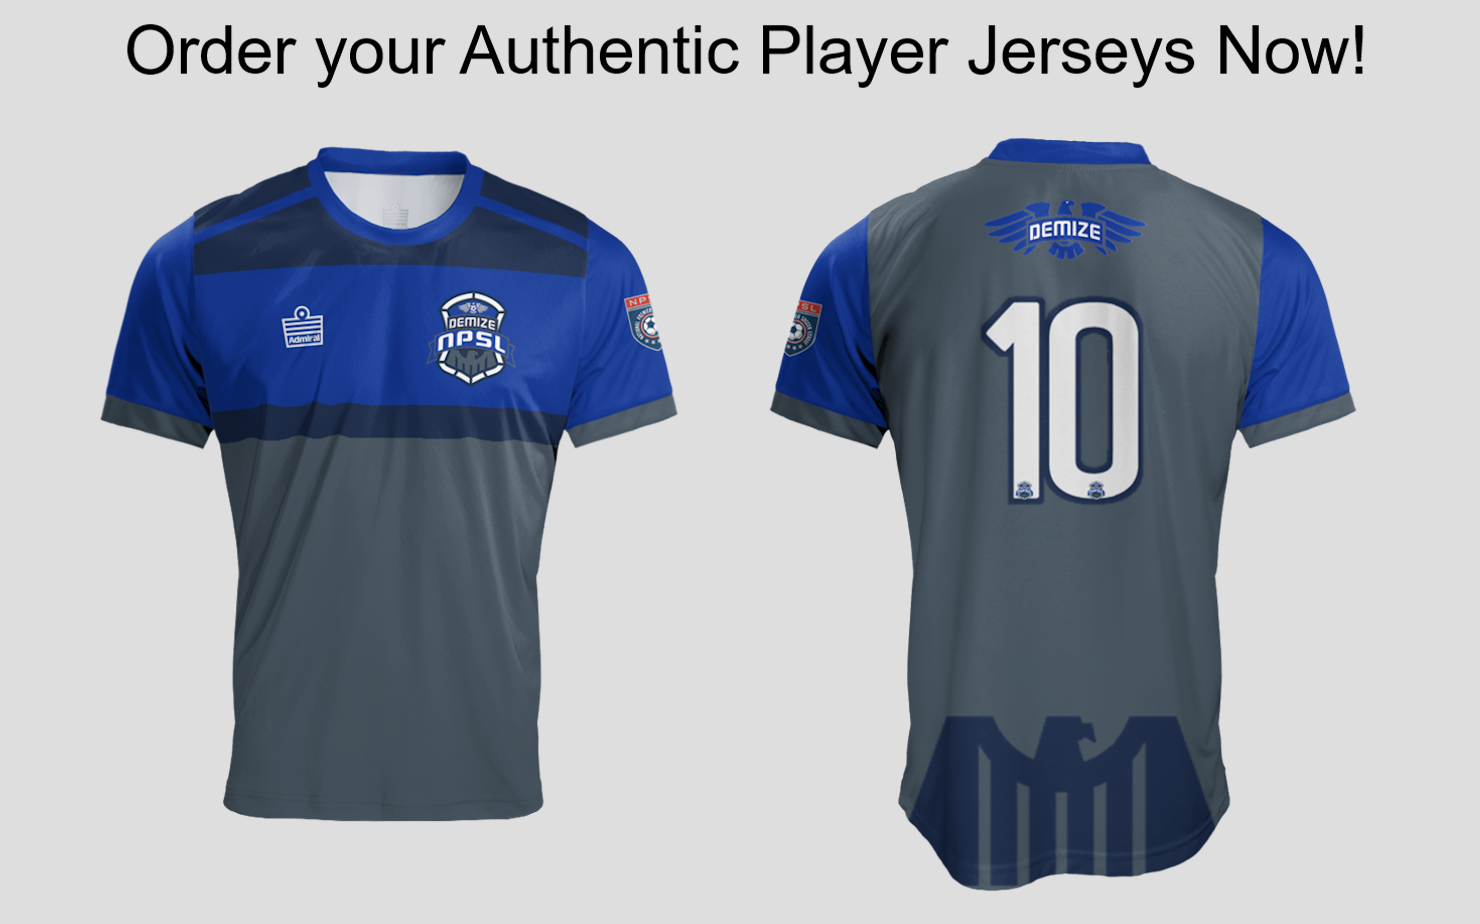 2017 Demize Authentic NPSL Jersey Special Offer